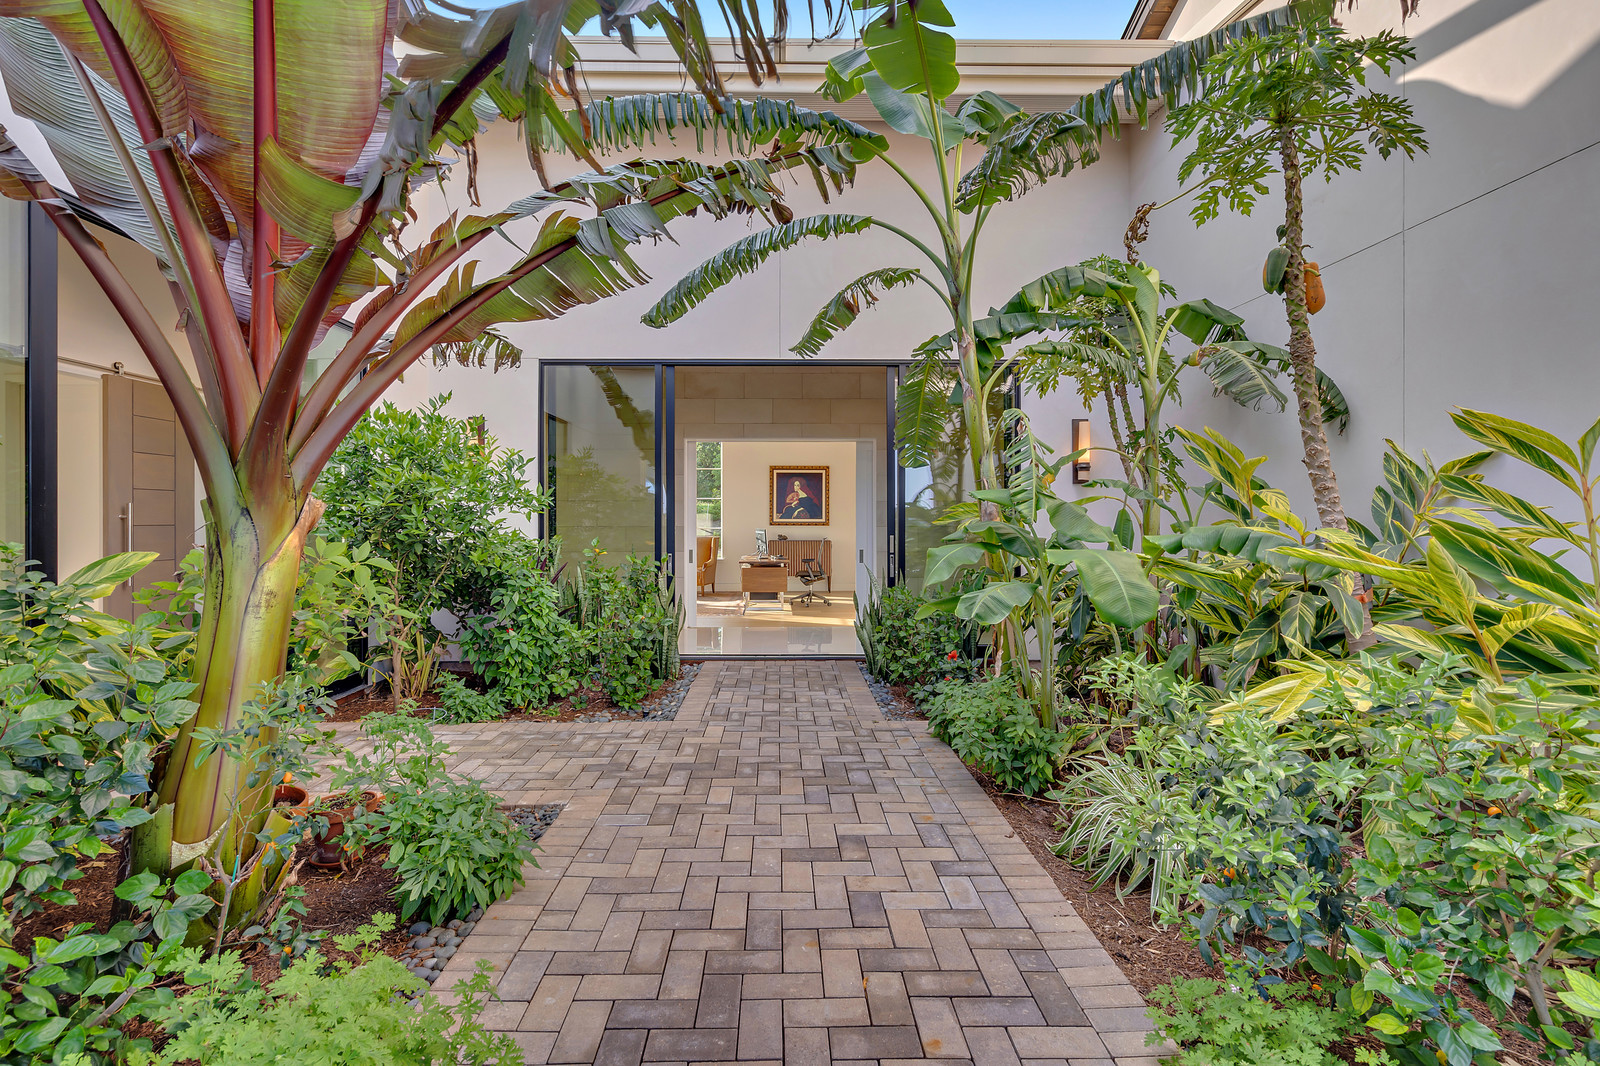 Tropical courtyard with retractible roof and wall and producing plants